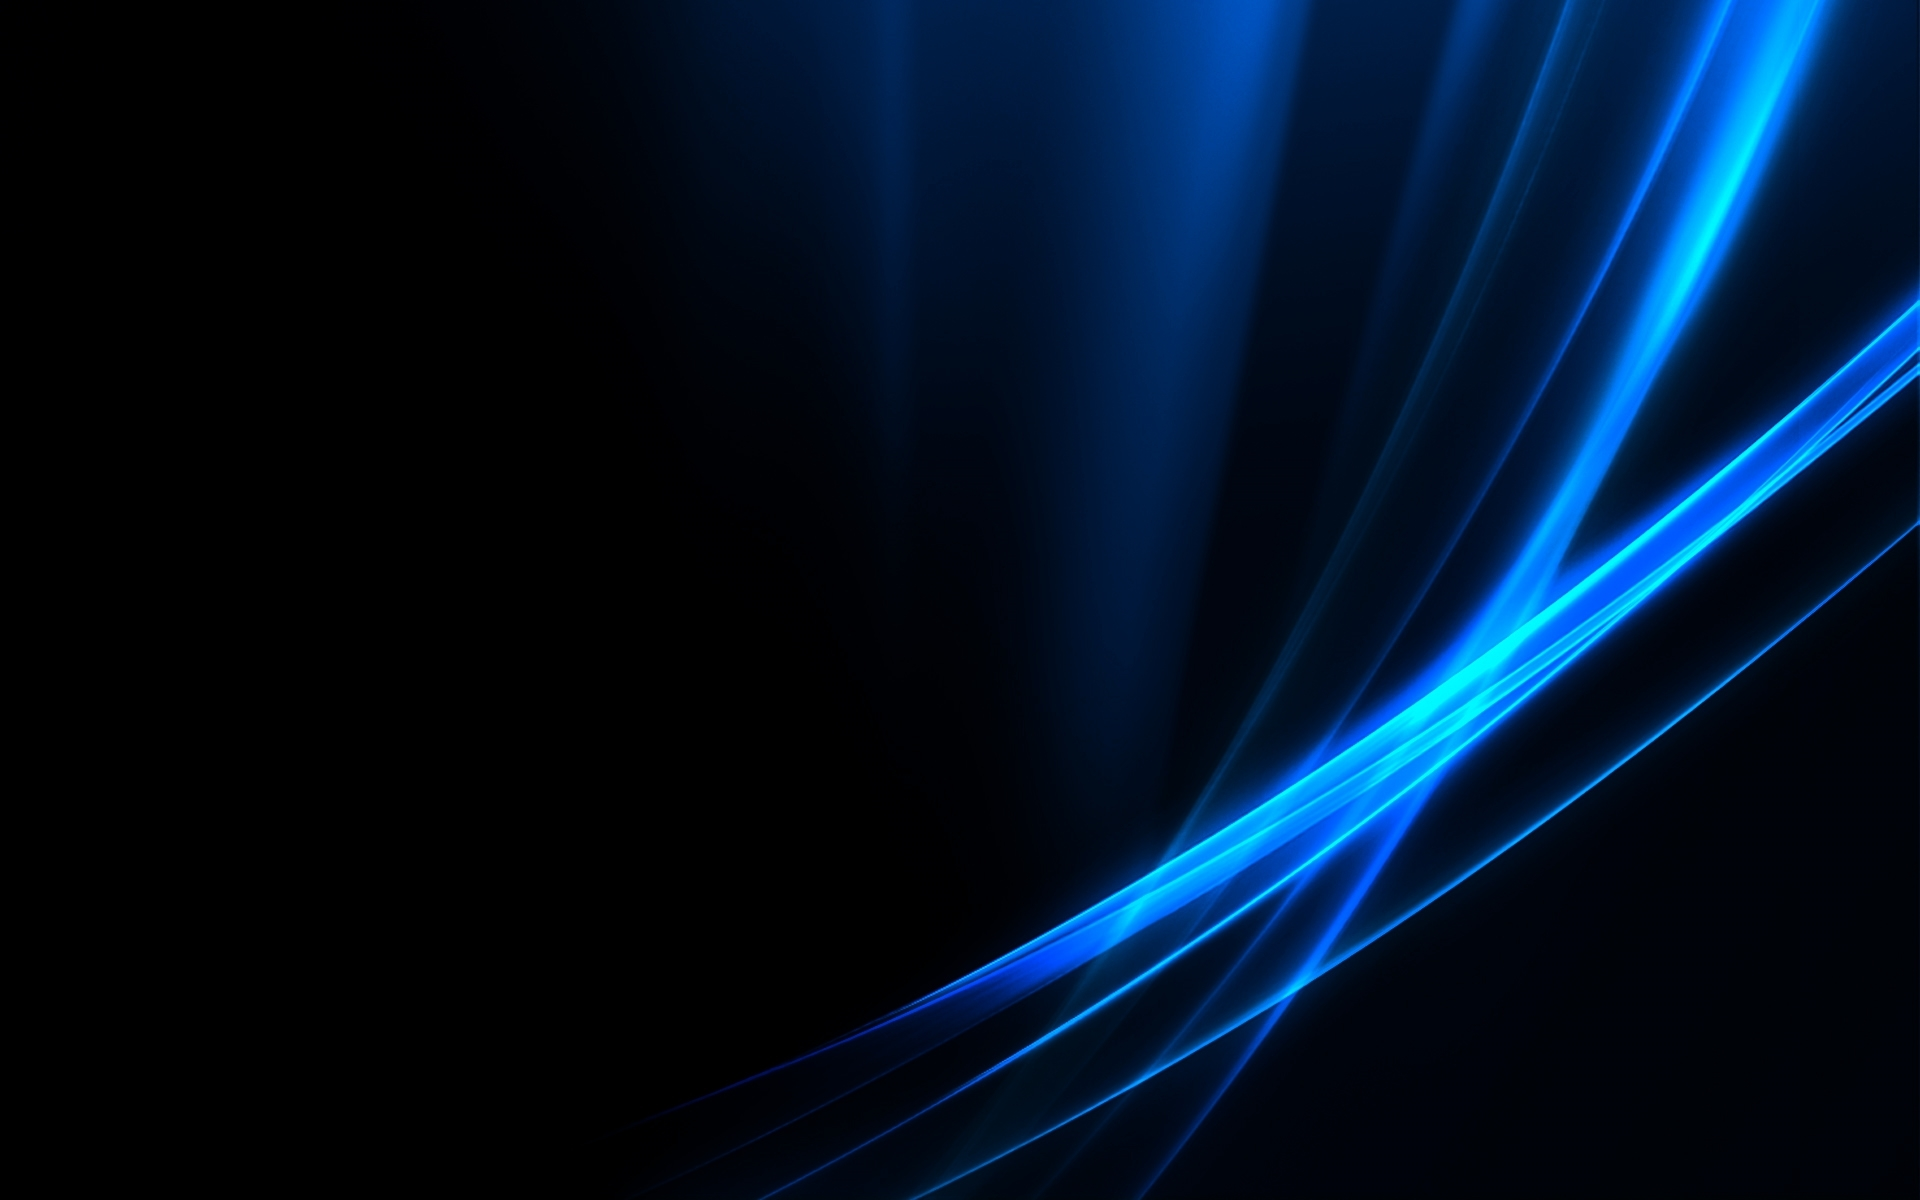 3d And Abstract Wallpapers  Hd Desktop Backgrounds  Page 16